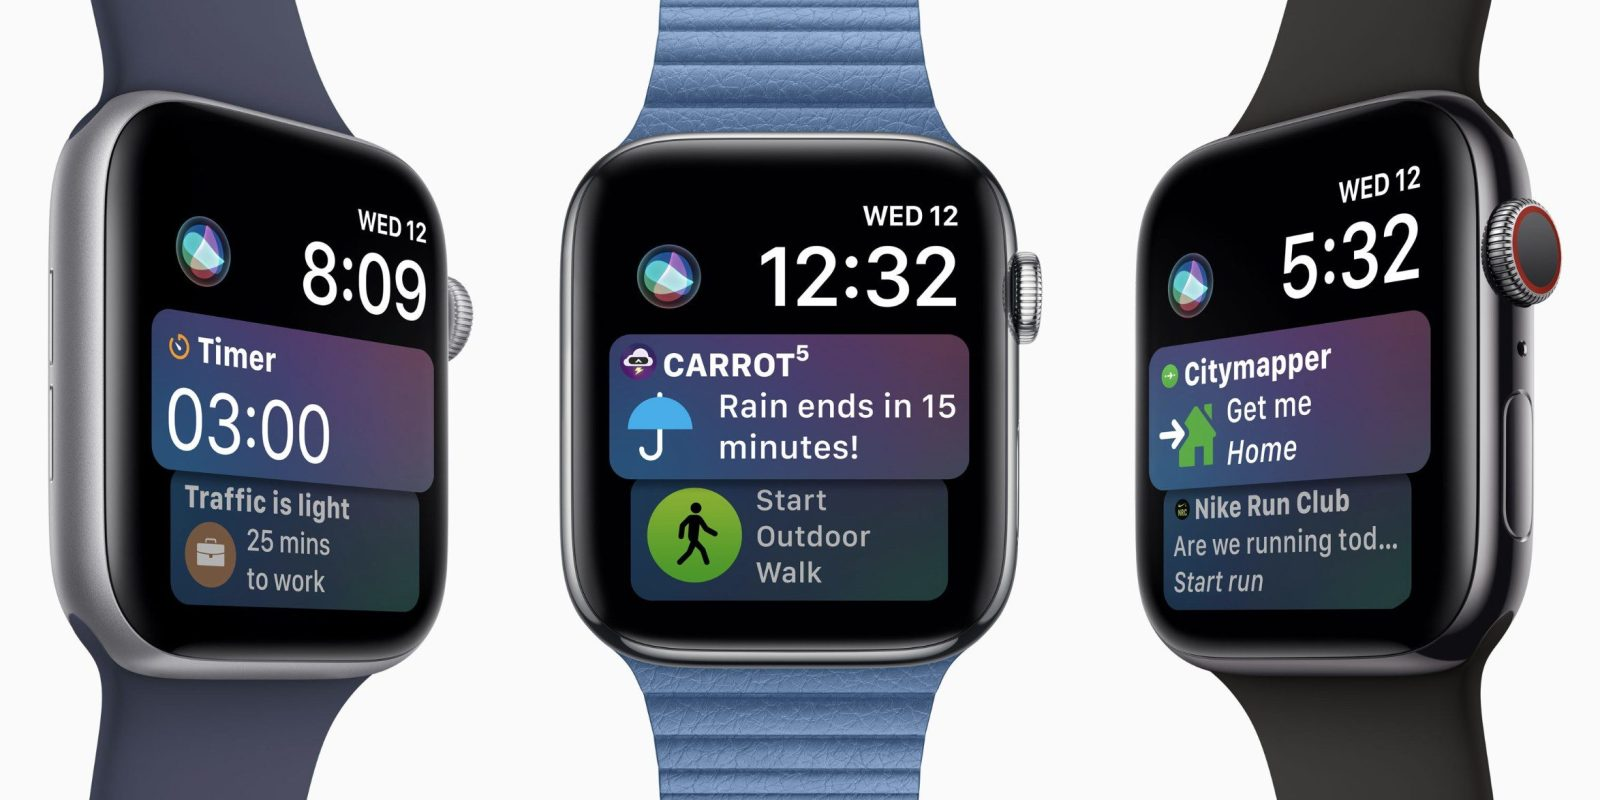 Apple Watch deals abound following Tuesday's event, plus Apple's latest iMacs $350 off